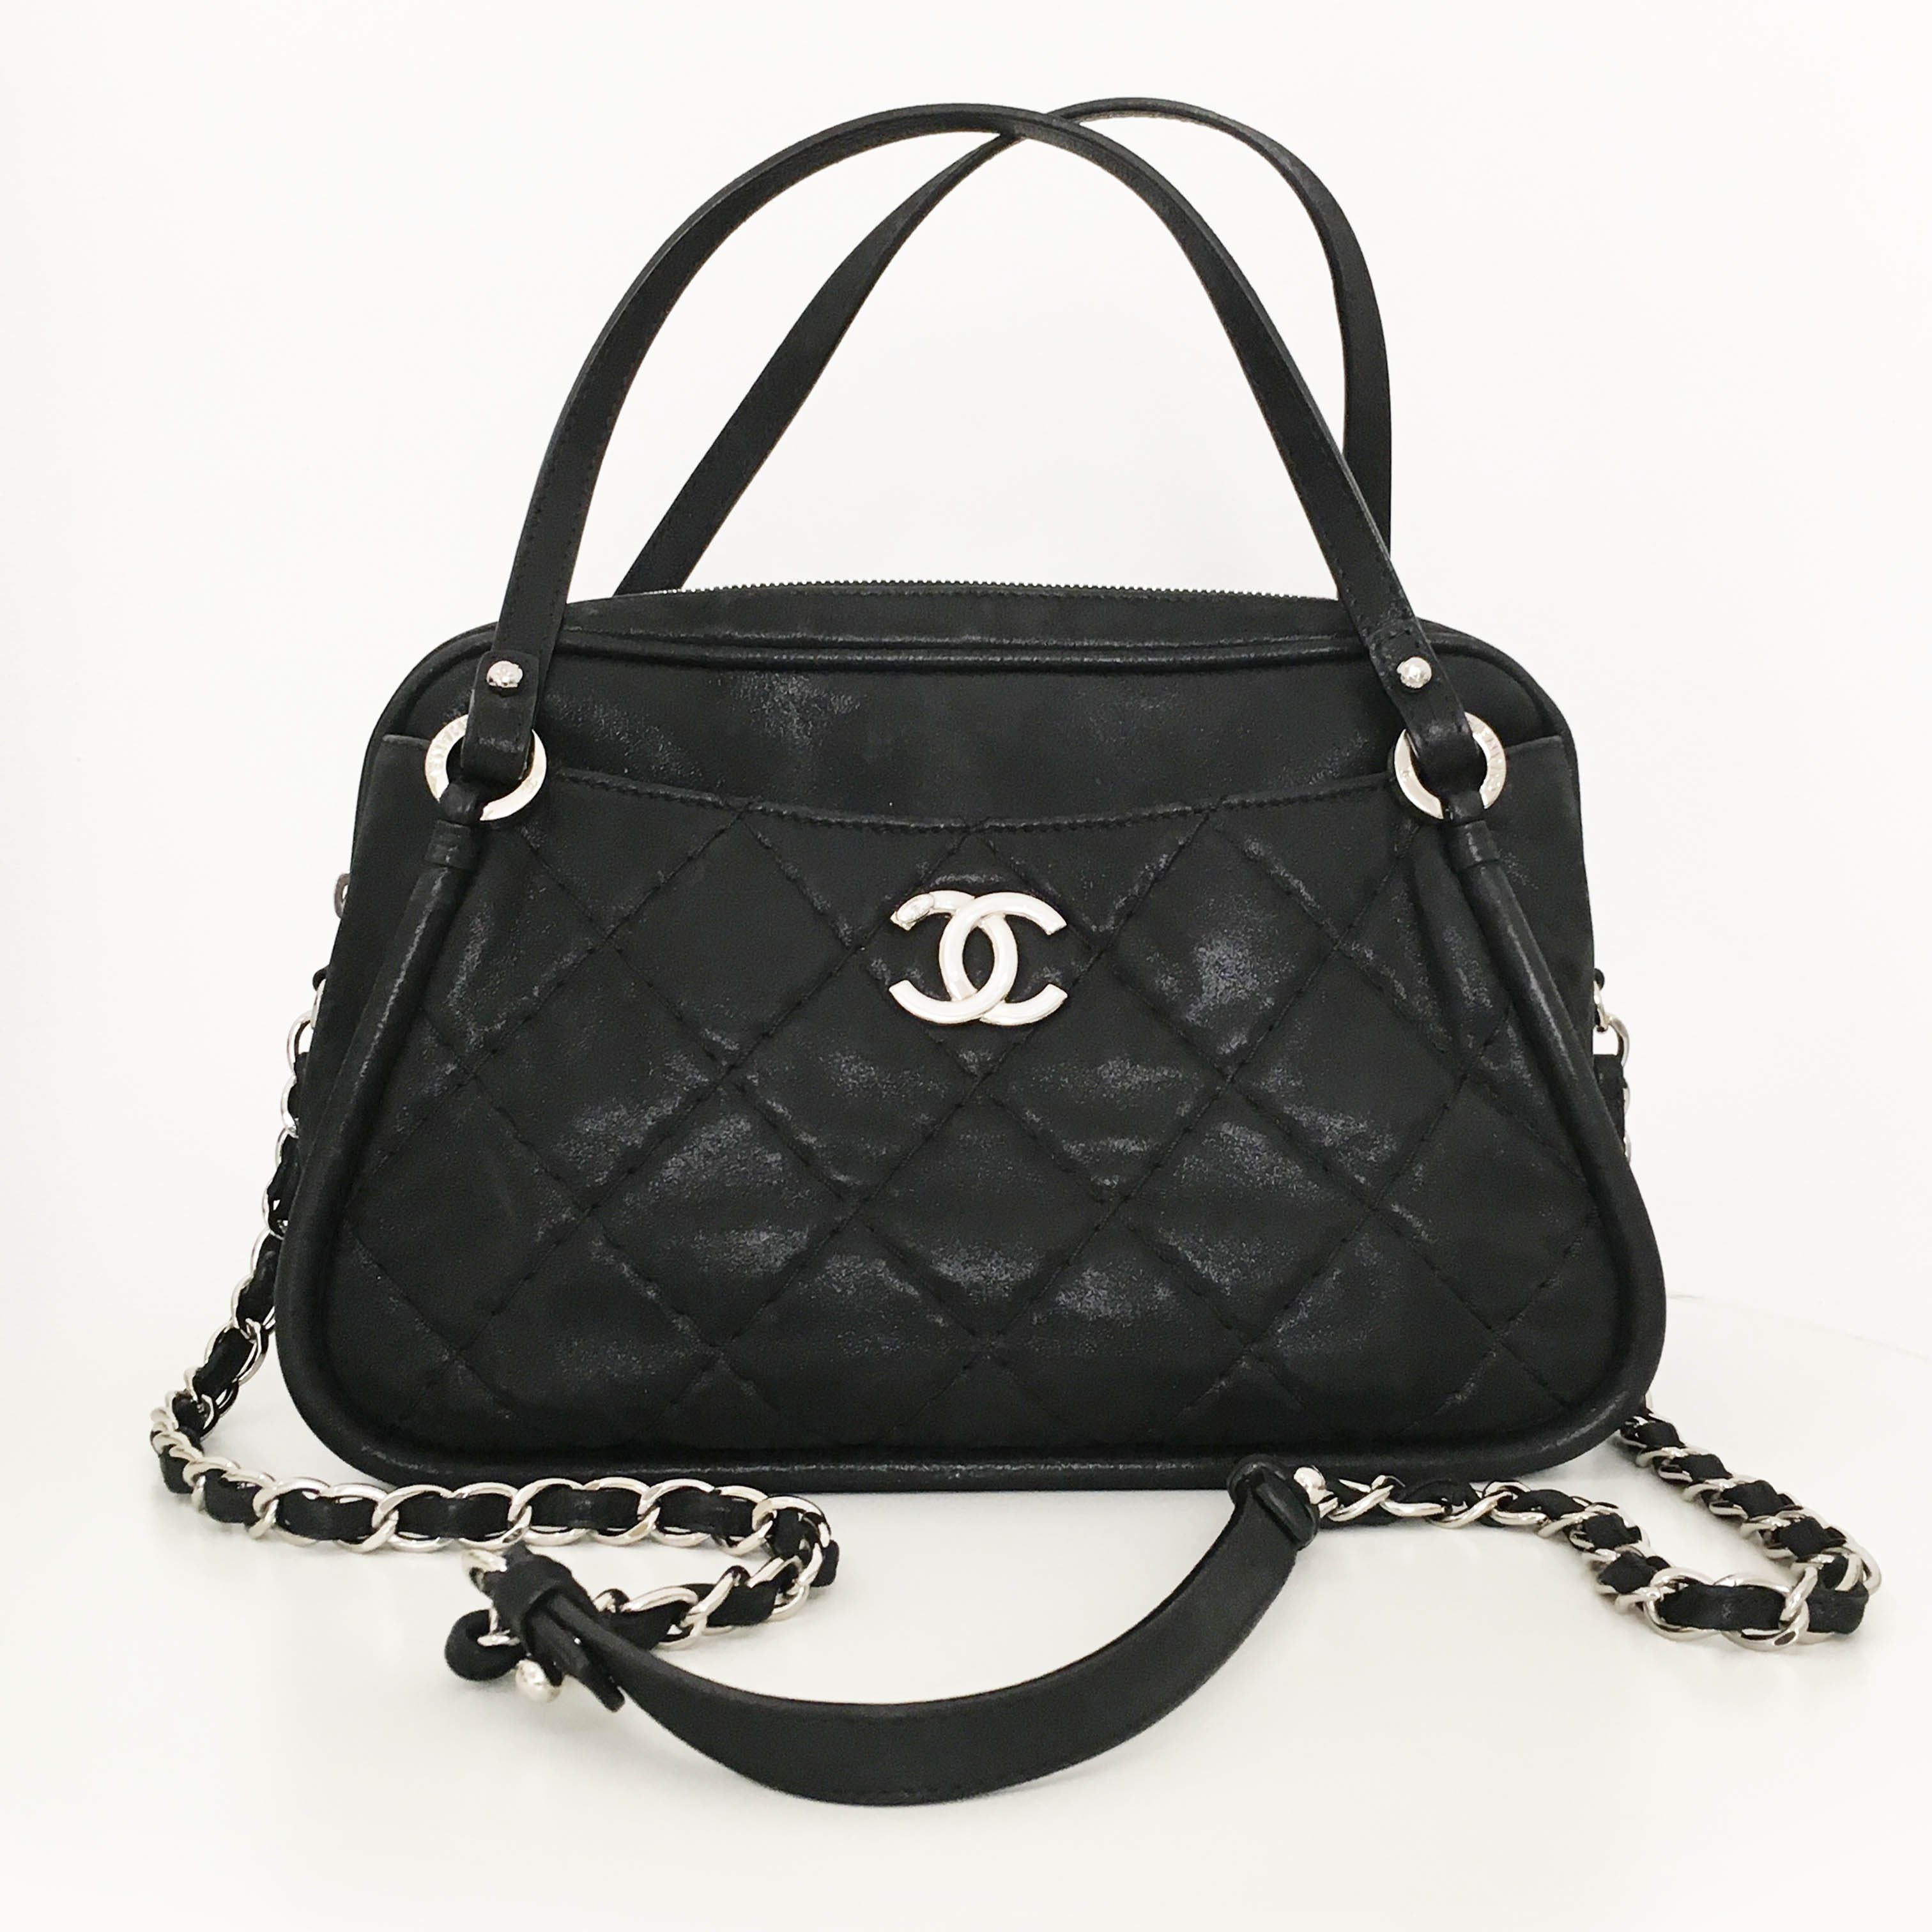 Chanel Black Velvet Leather Bag